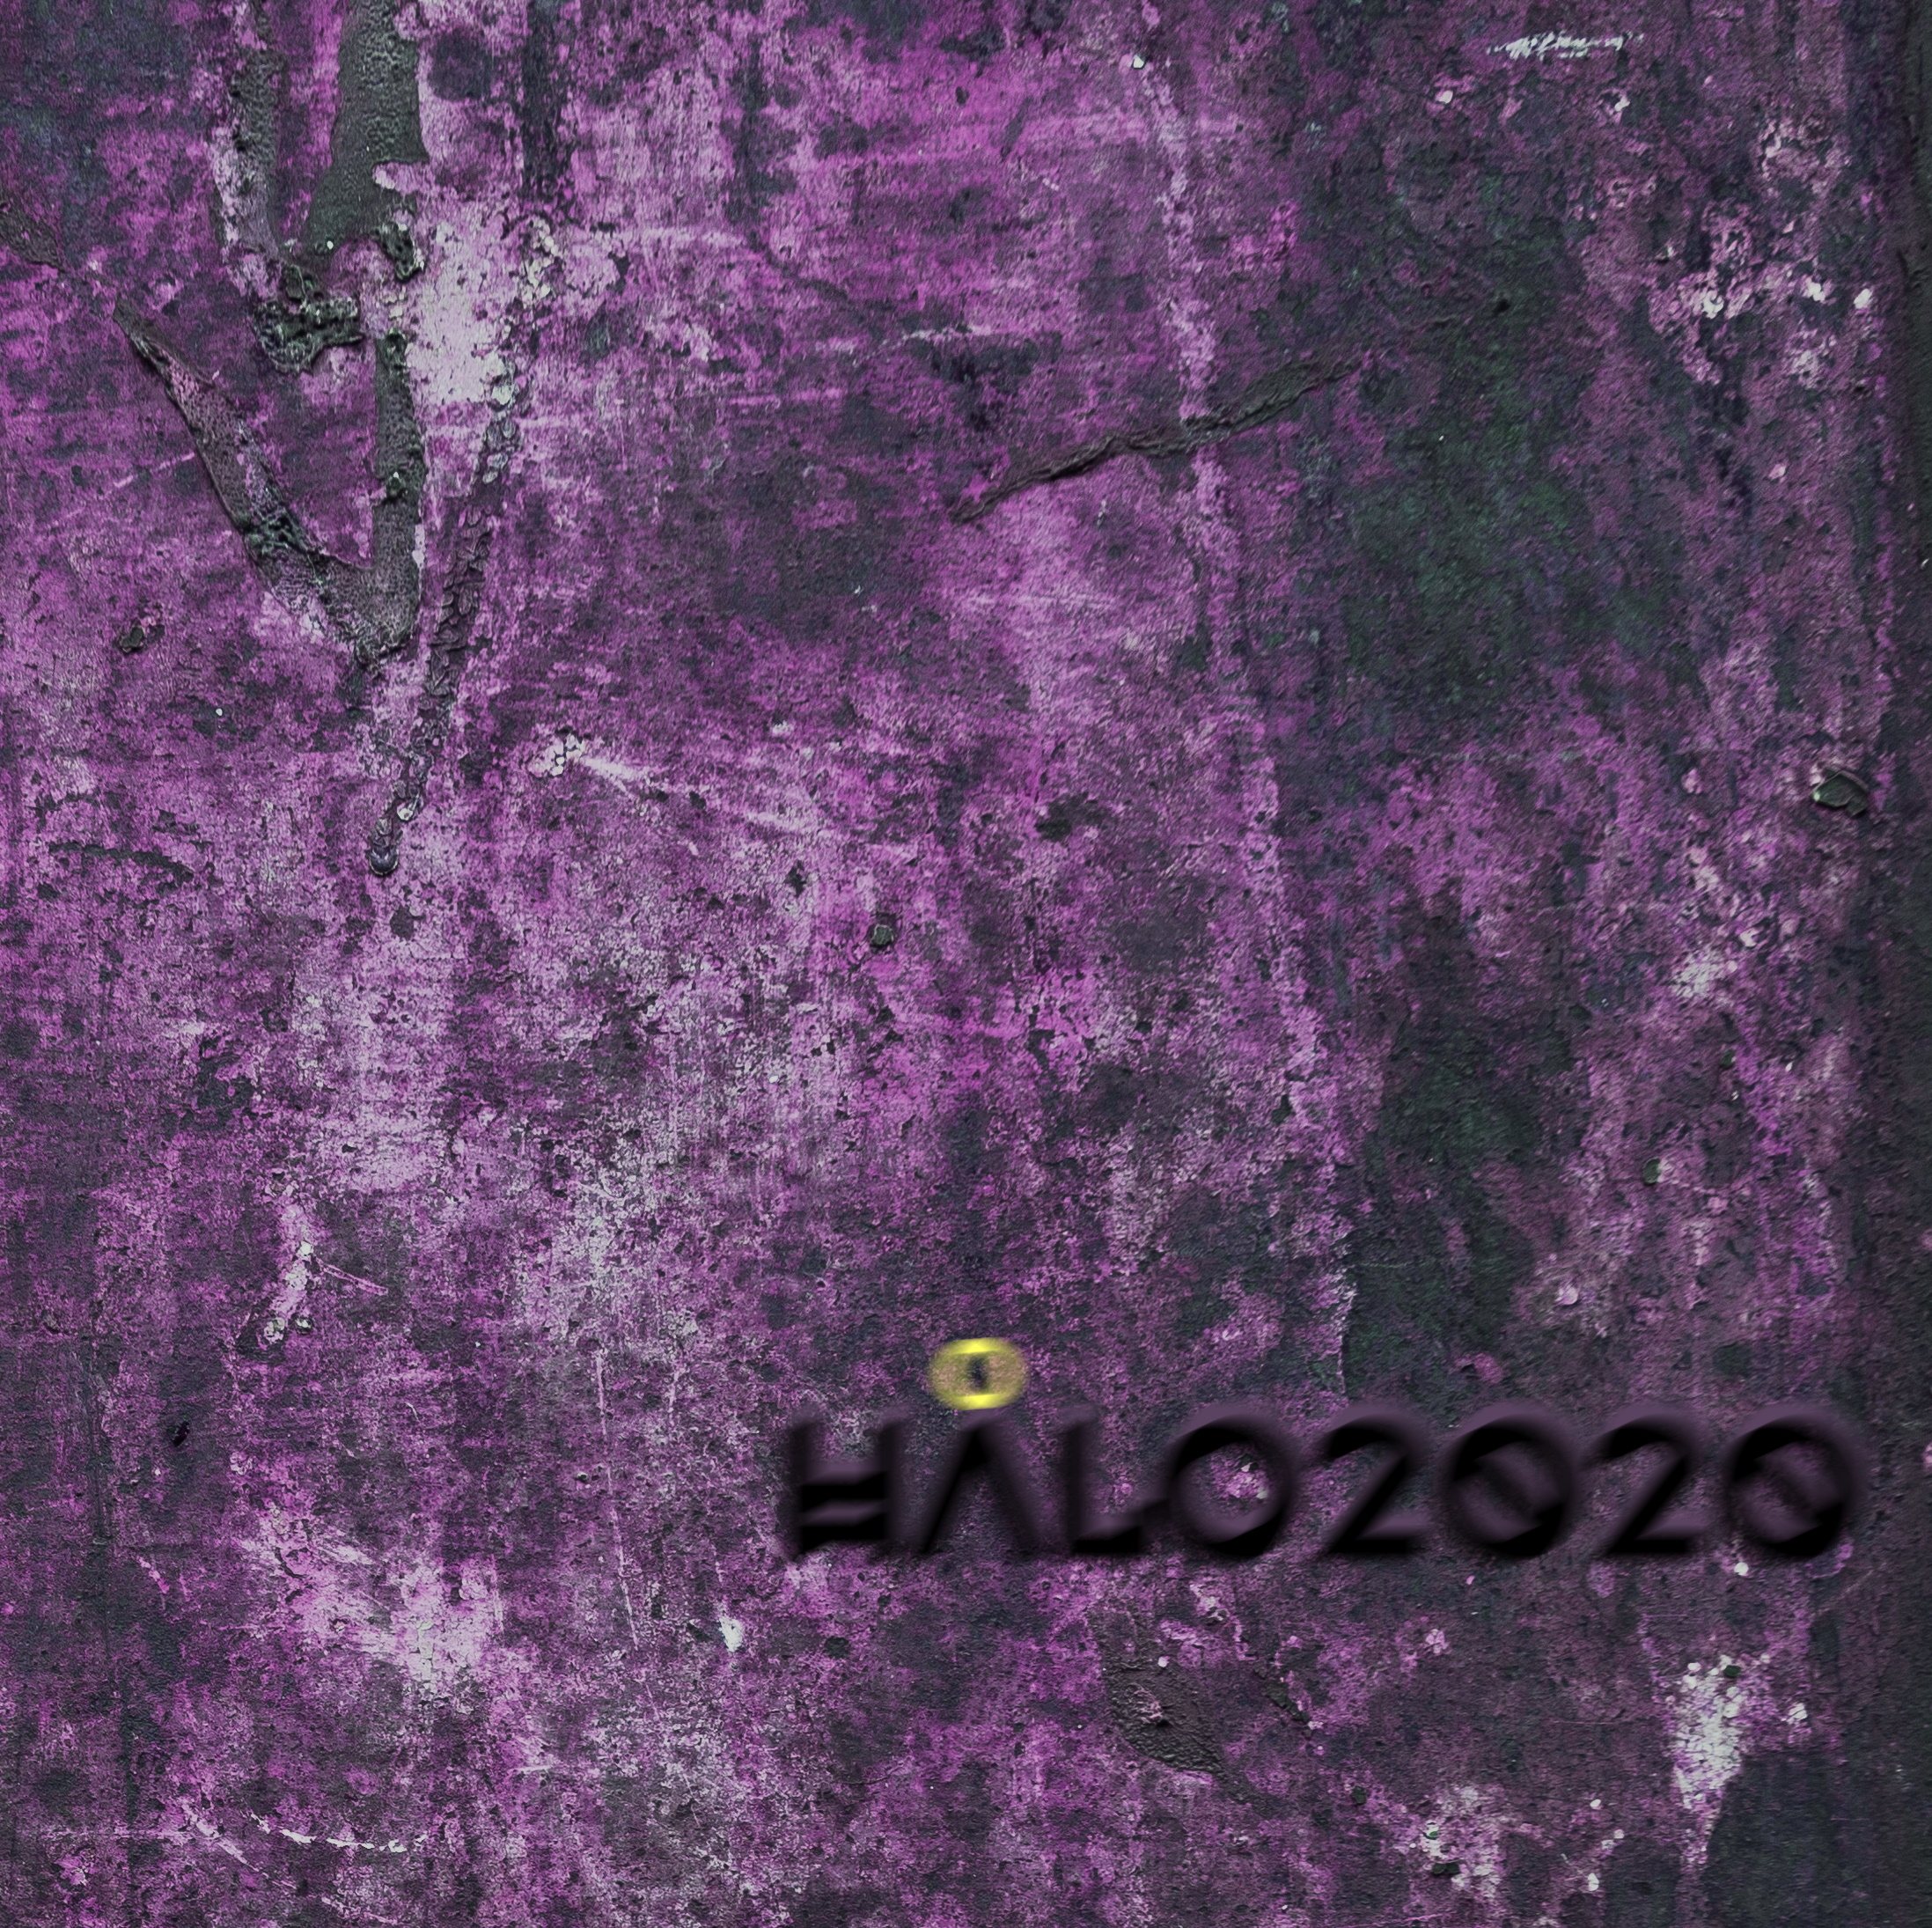 HaLO 2020 album cover